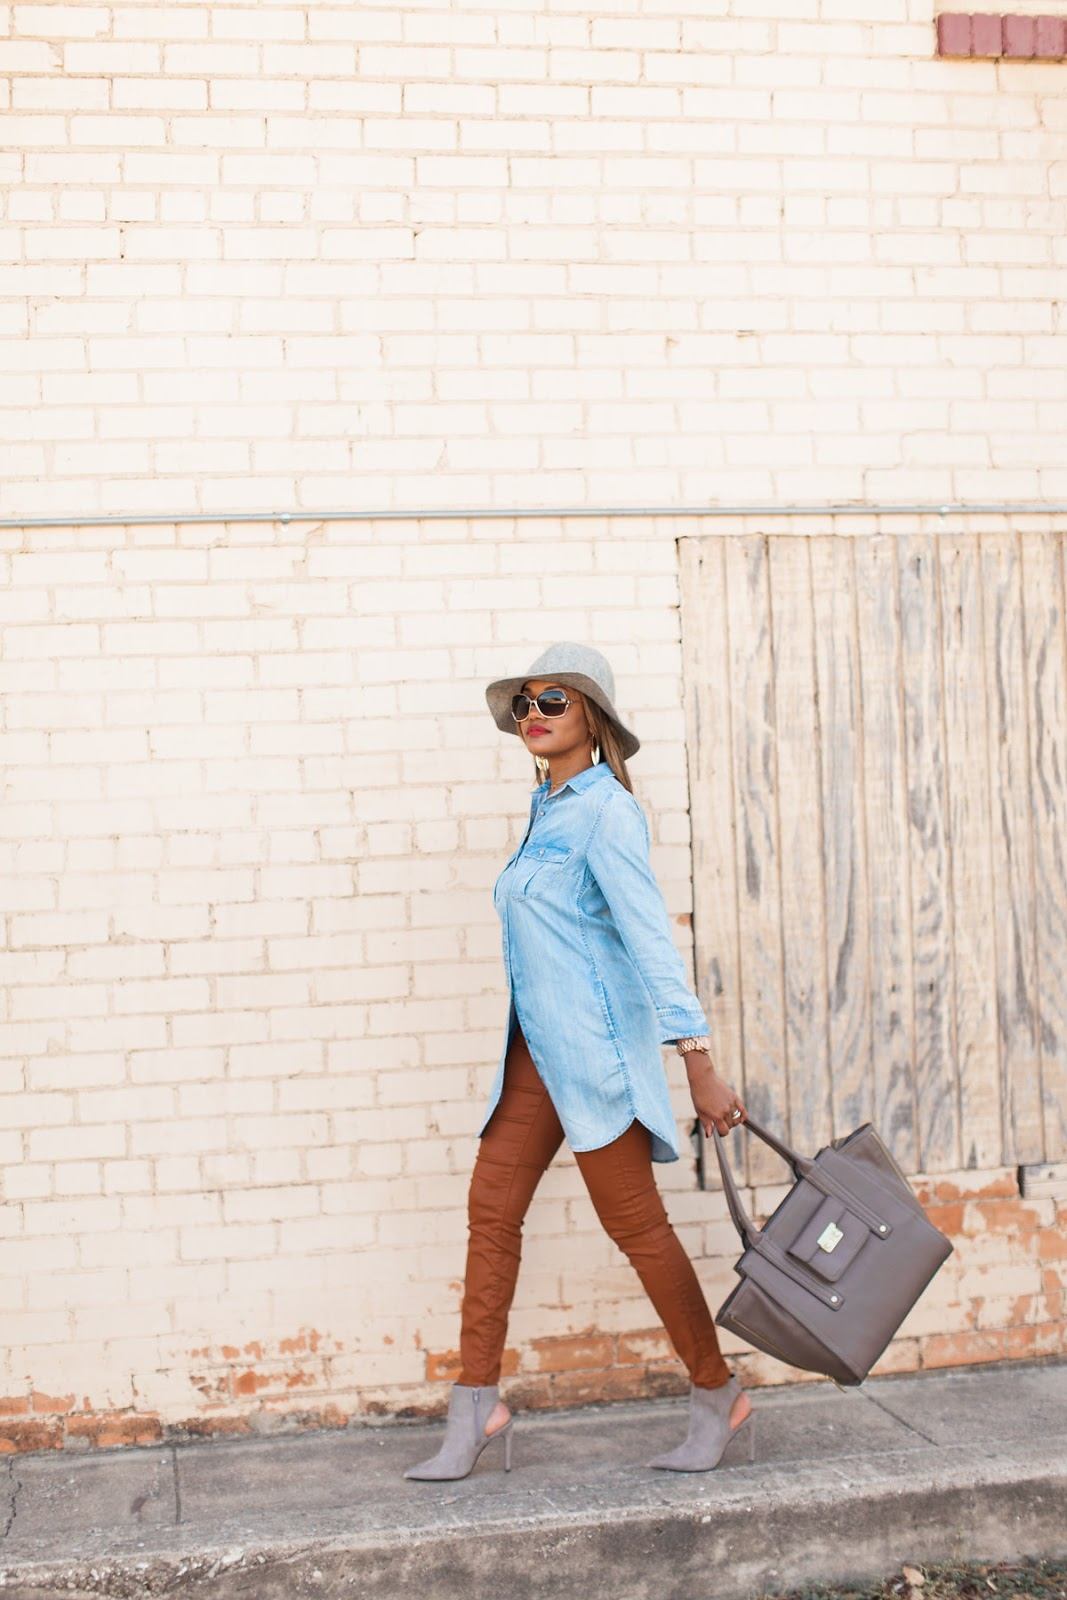 dallas fashion blogger, fashion blogger, detroit fashion blogger, fall hats, how to wear fedora, zara booties, philip lim for target, coated jeans, denim shirt outfit, red lips, aviator glasses